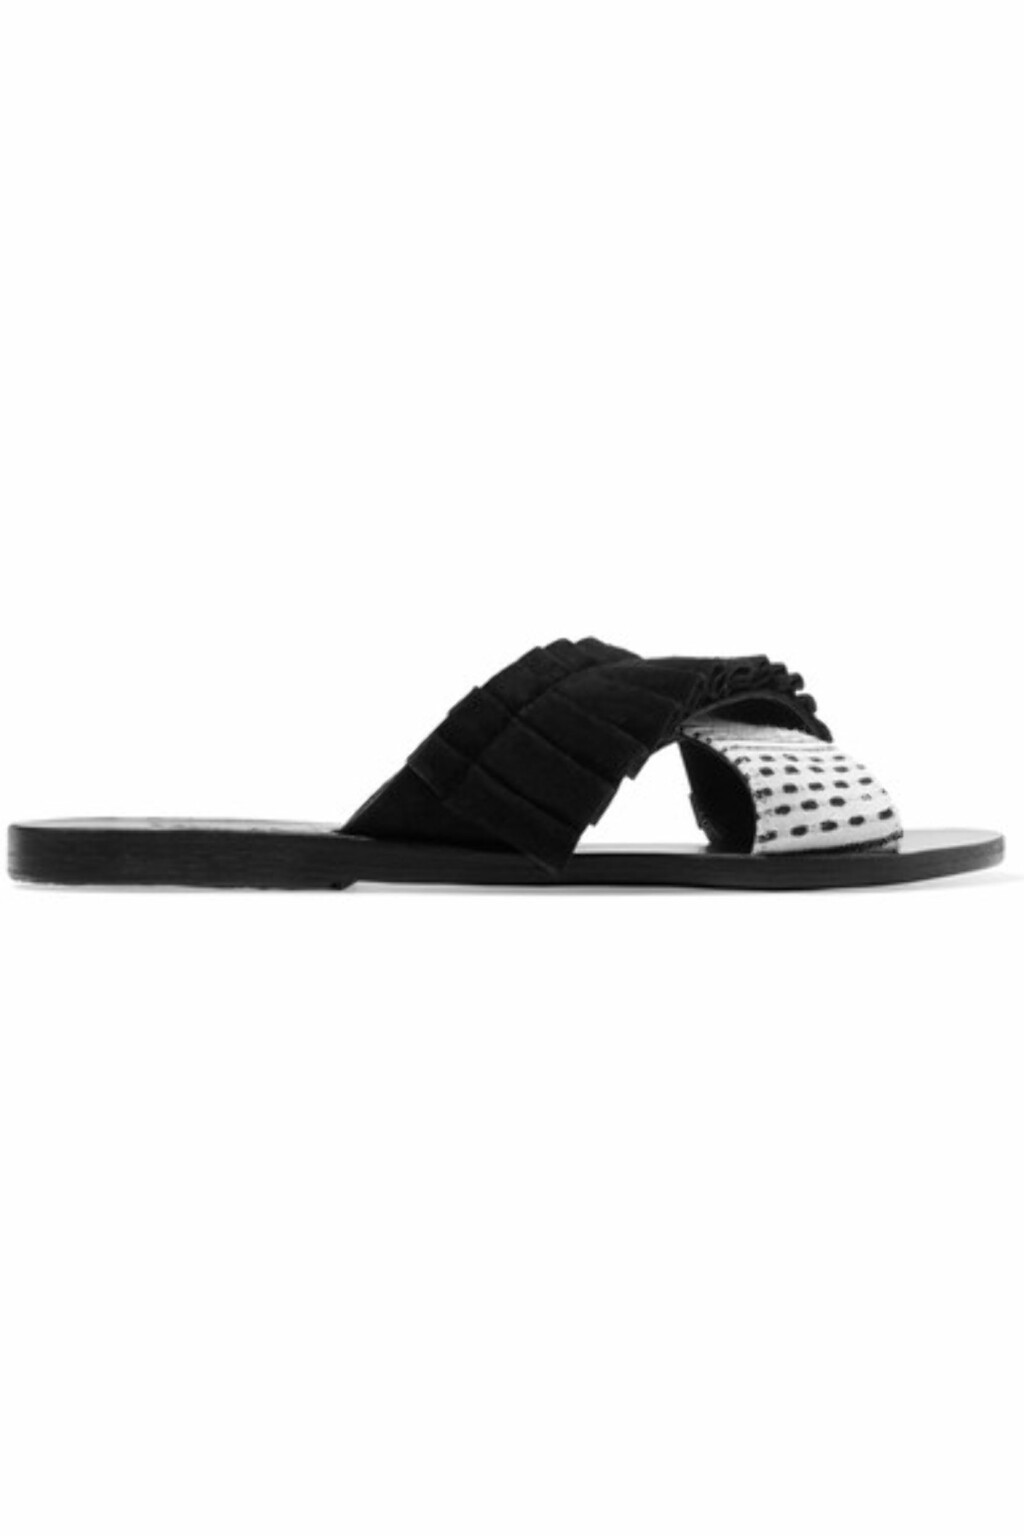 Sandaler fra Ancient Greek Sandals via Net-a-porter.com | kr 2030